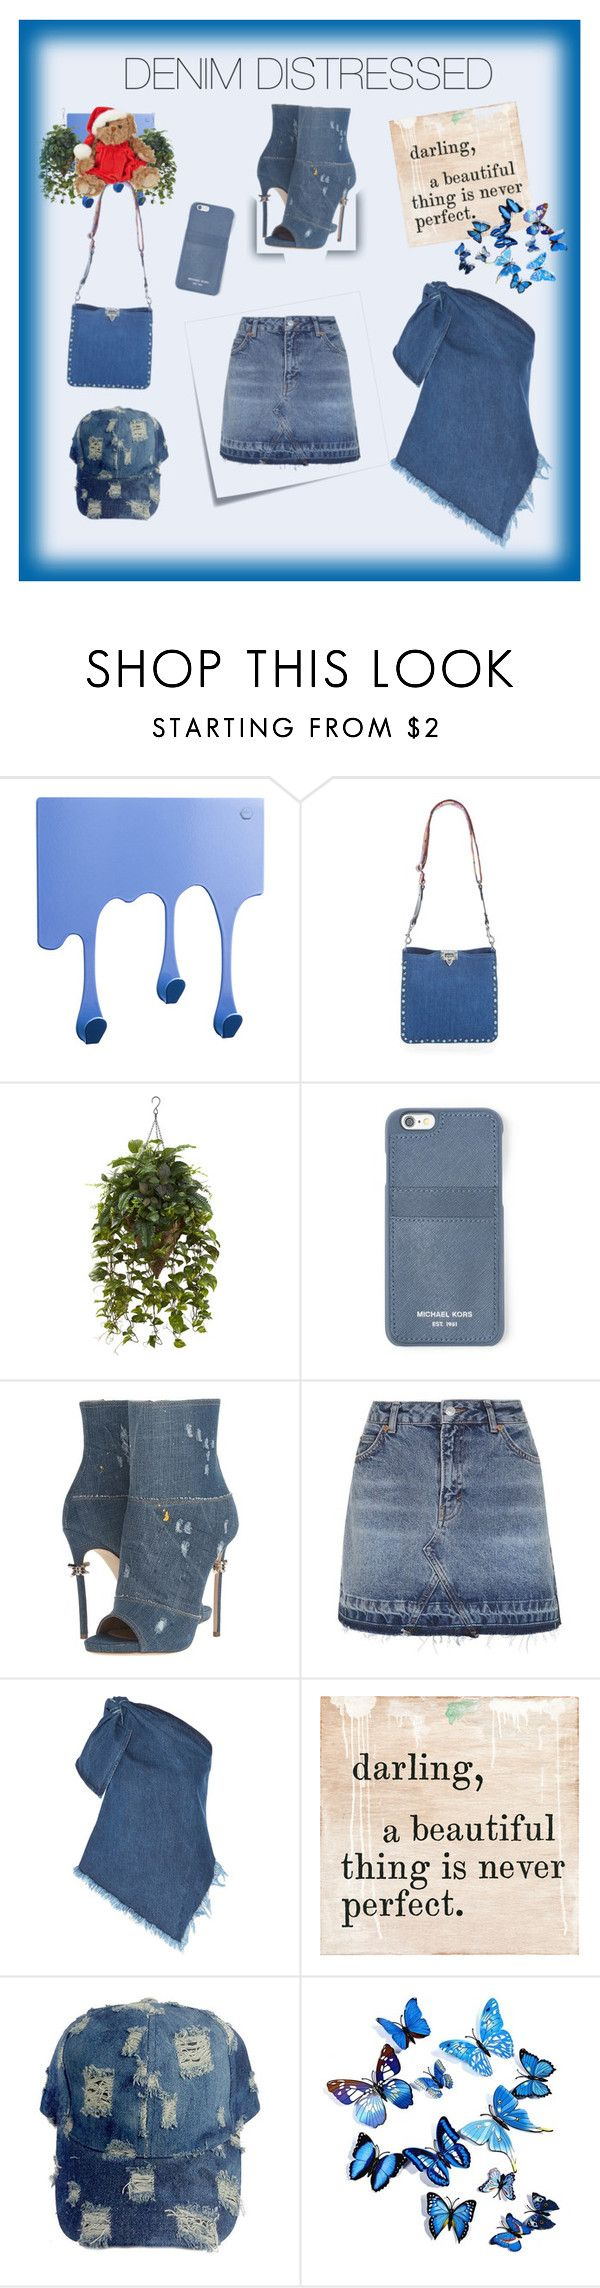 """Denim Distressed"" by donnyprabowo ❤ liked on Polyvore featuring Pulpo, Valentino, MICHAEL Michael Kors, Dsquared2, Post-It, Topshop, Marques'Almeida and Sugarboo Designs"